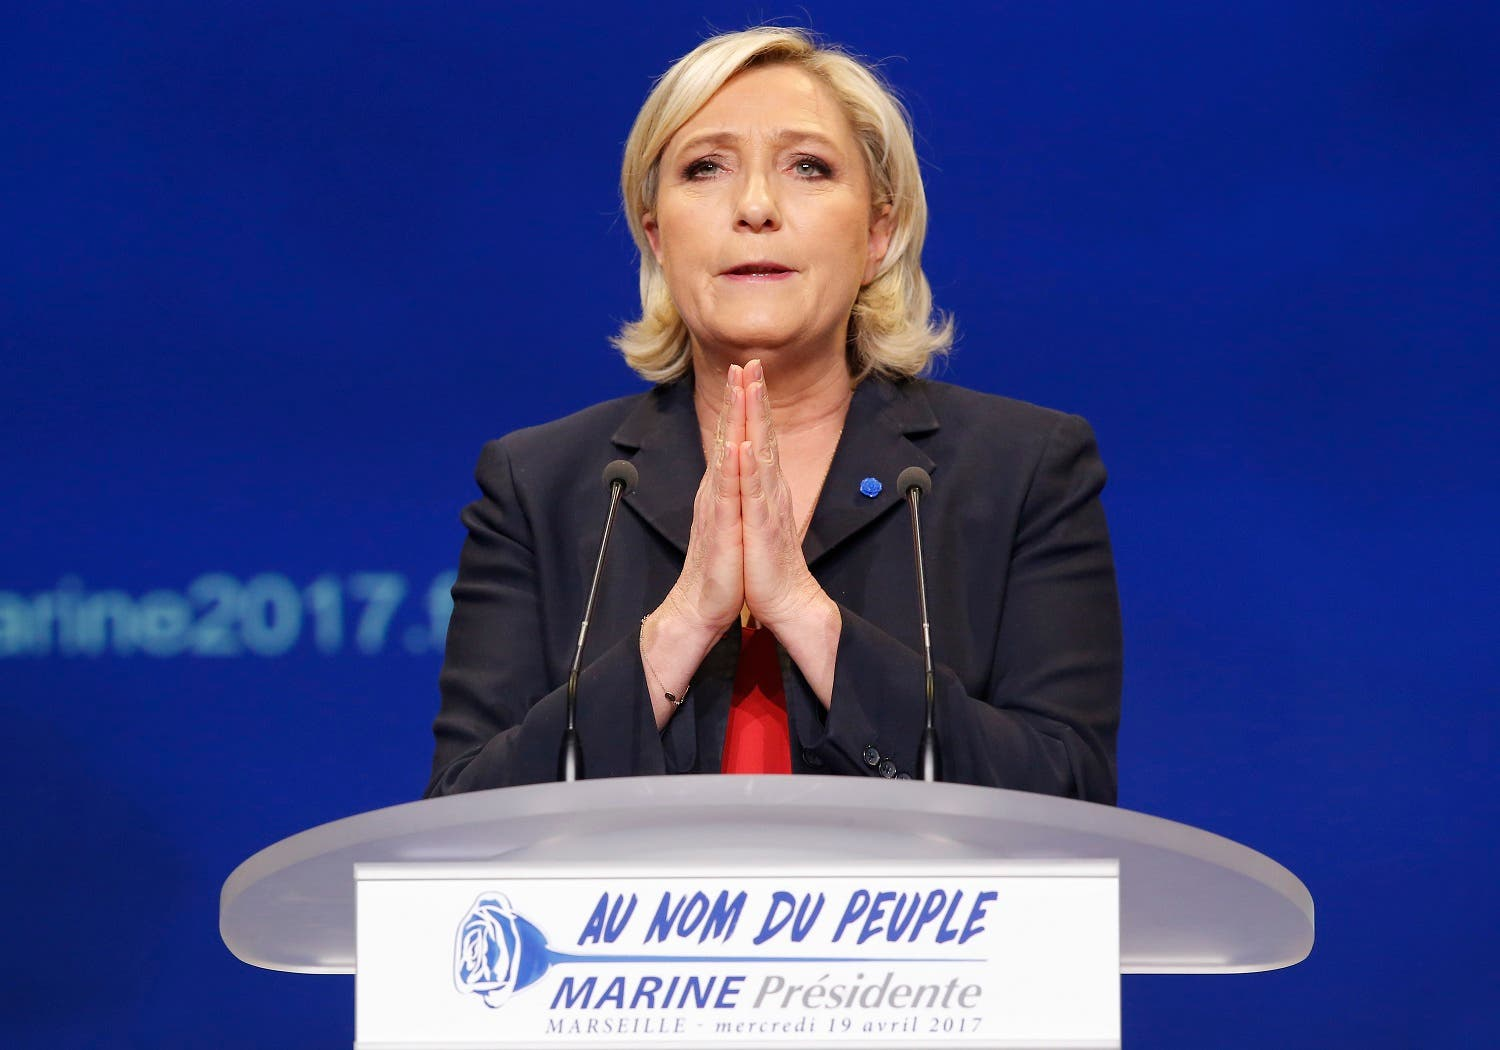 Marine Le Pen speaks during a meeting in Marseille on April 19, 2017. (AP)